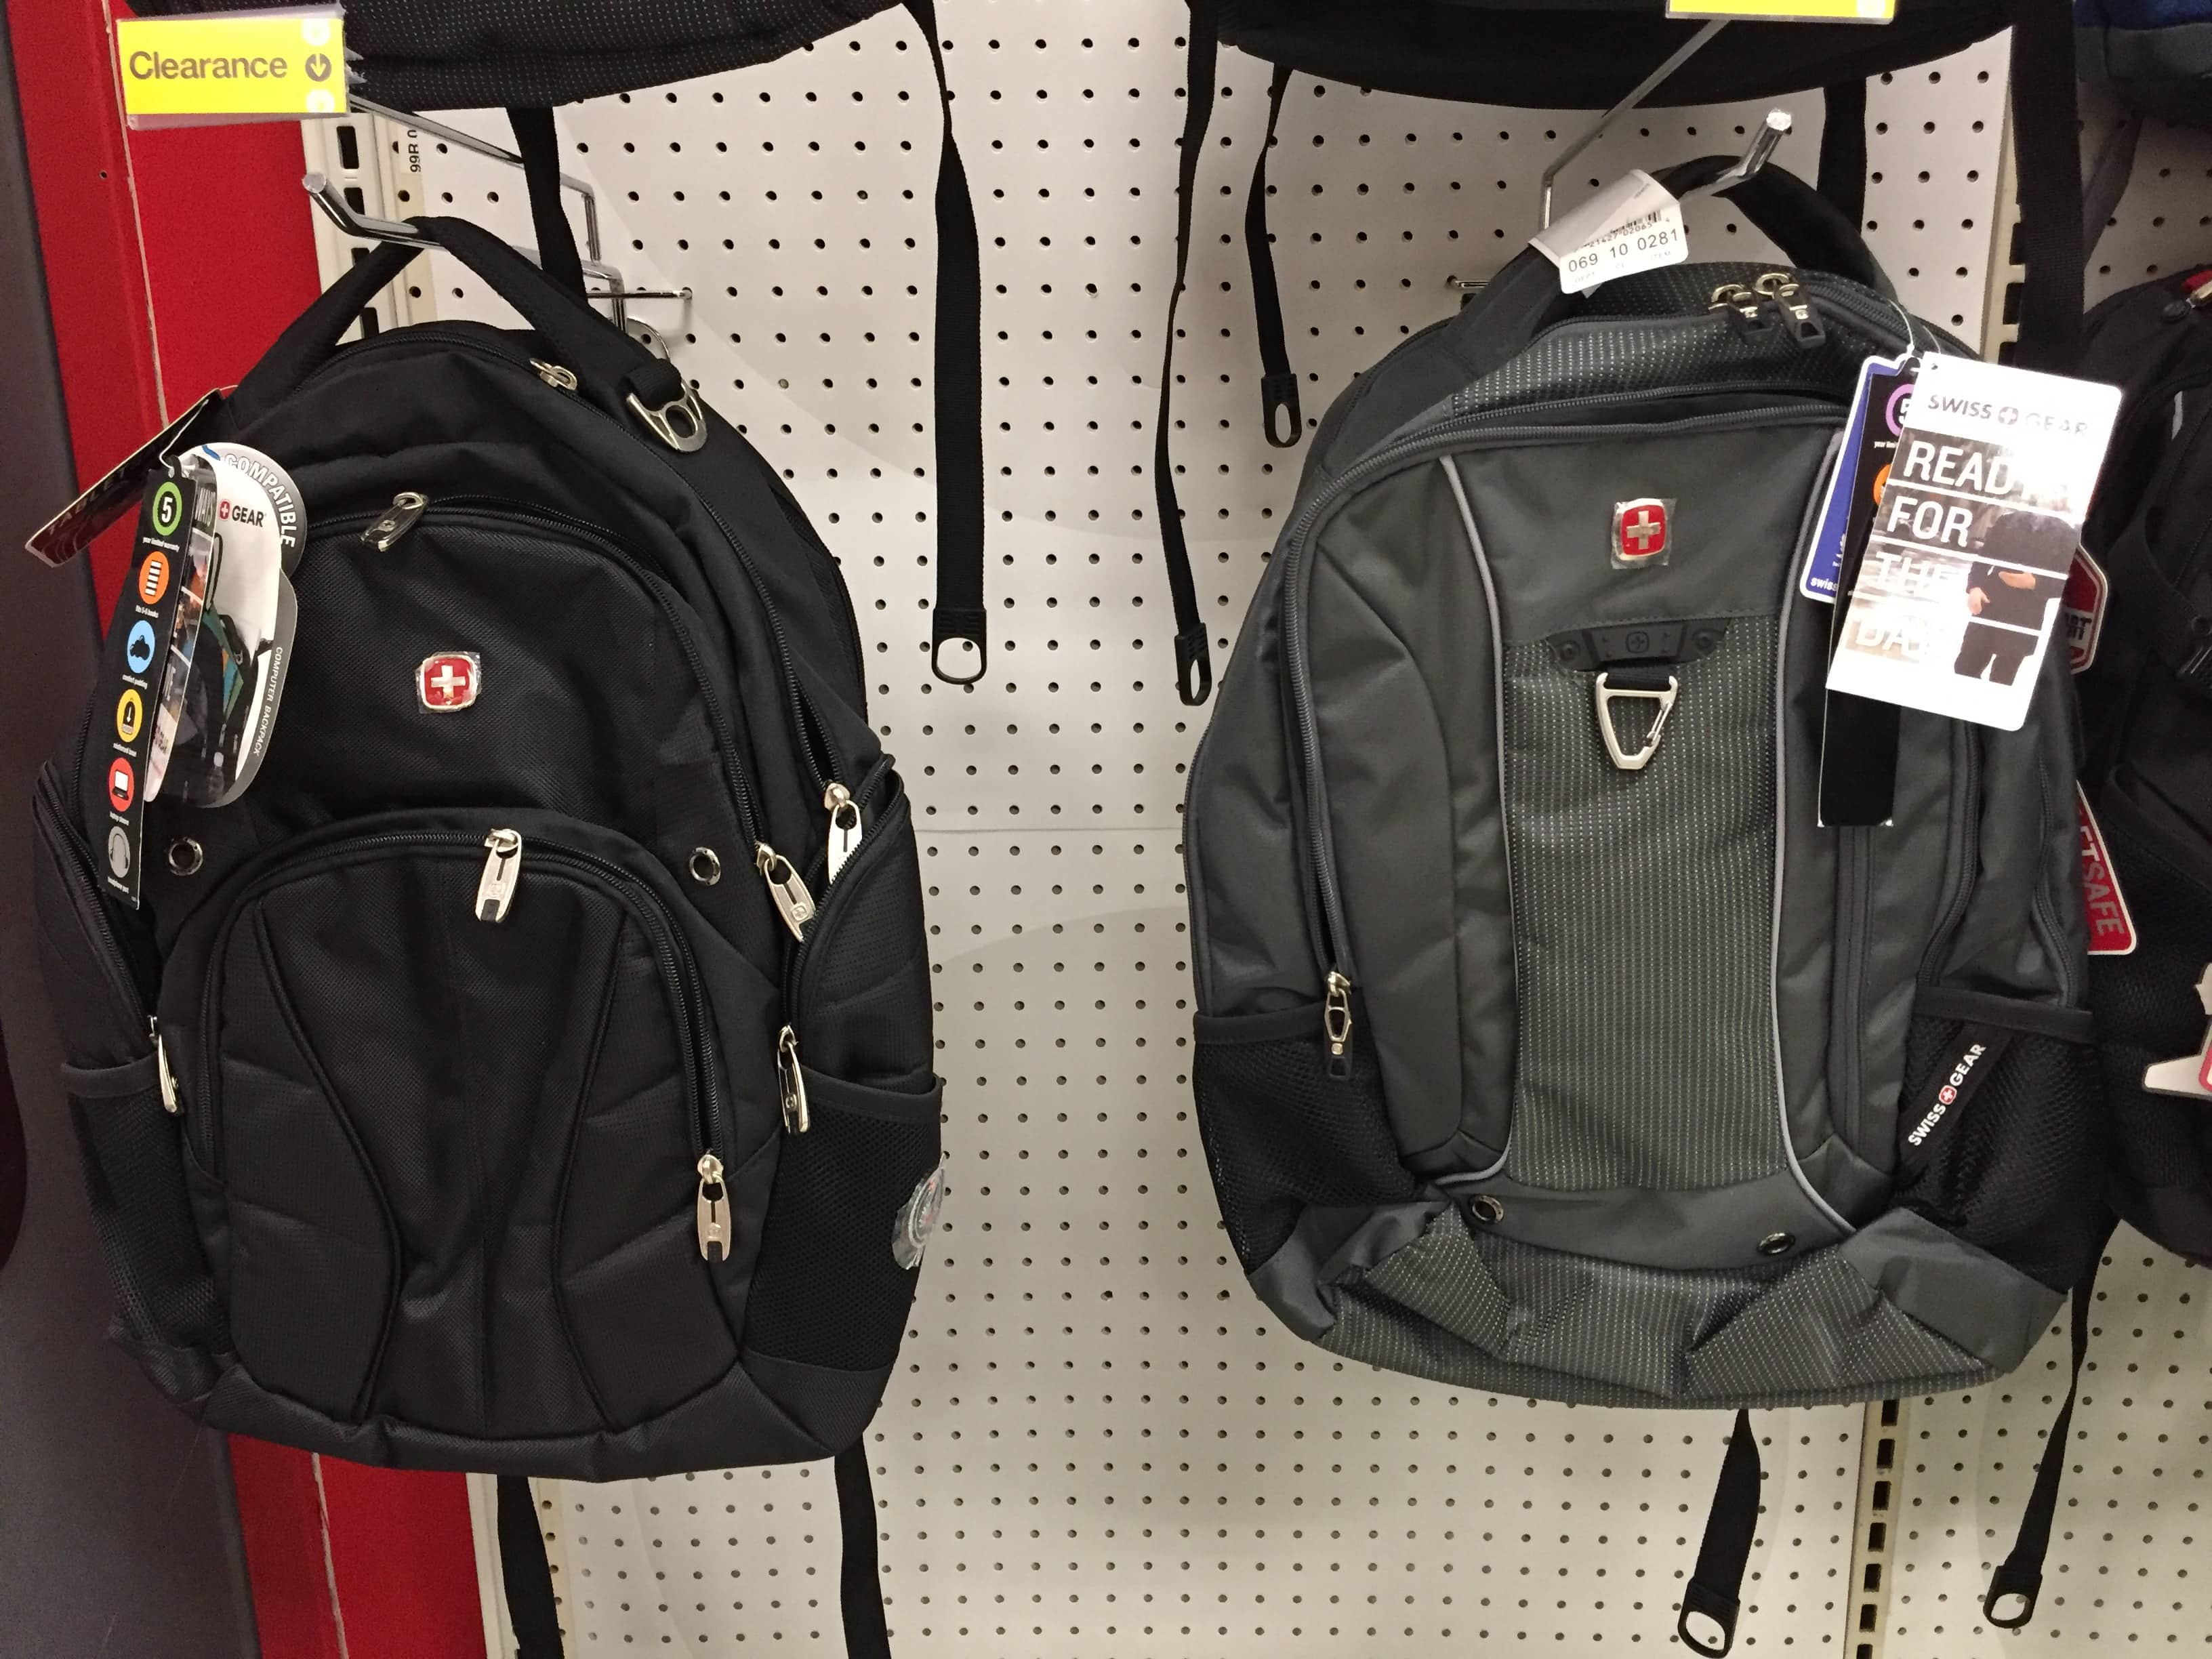 5085816c12 Swiss Gear Backpacks -  15 and  30 on Clearance at Target B M - YMMV ...